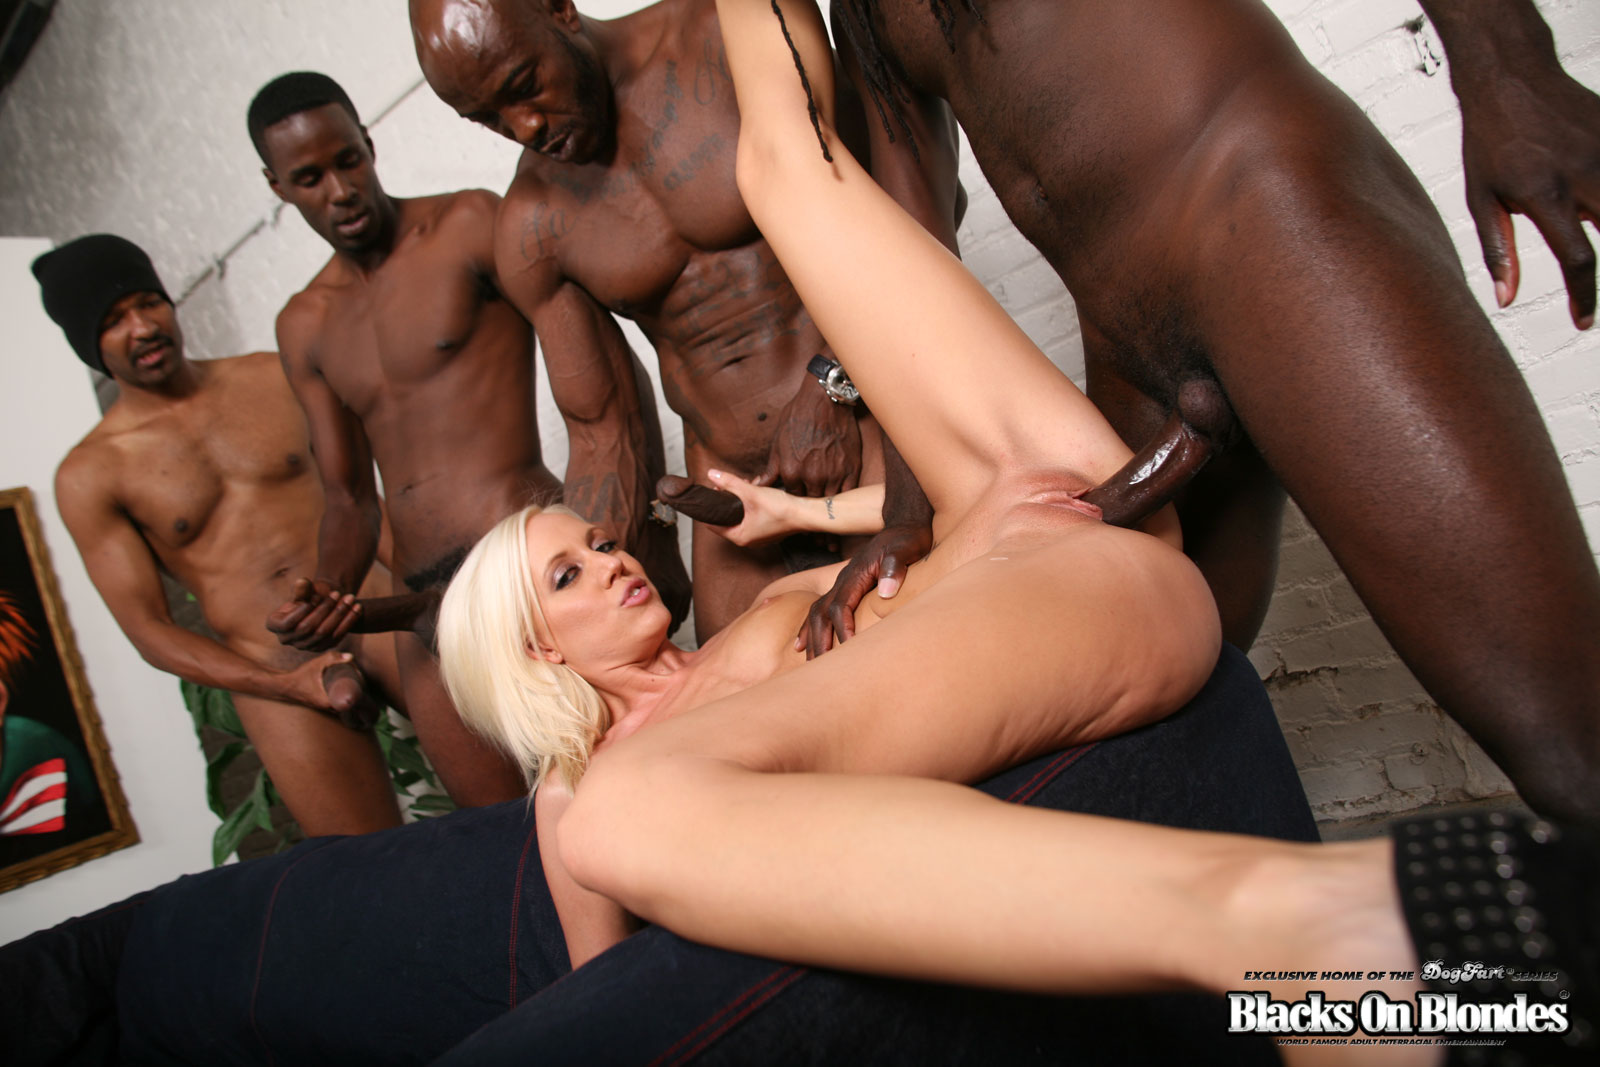 Will hot black girl gangbang apologise, there